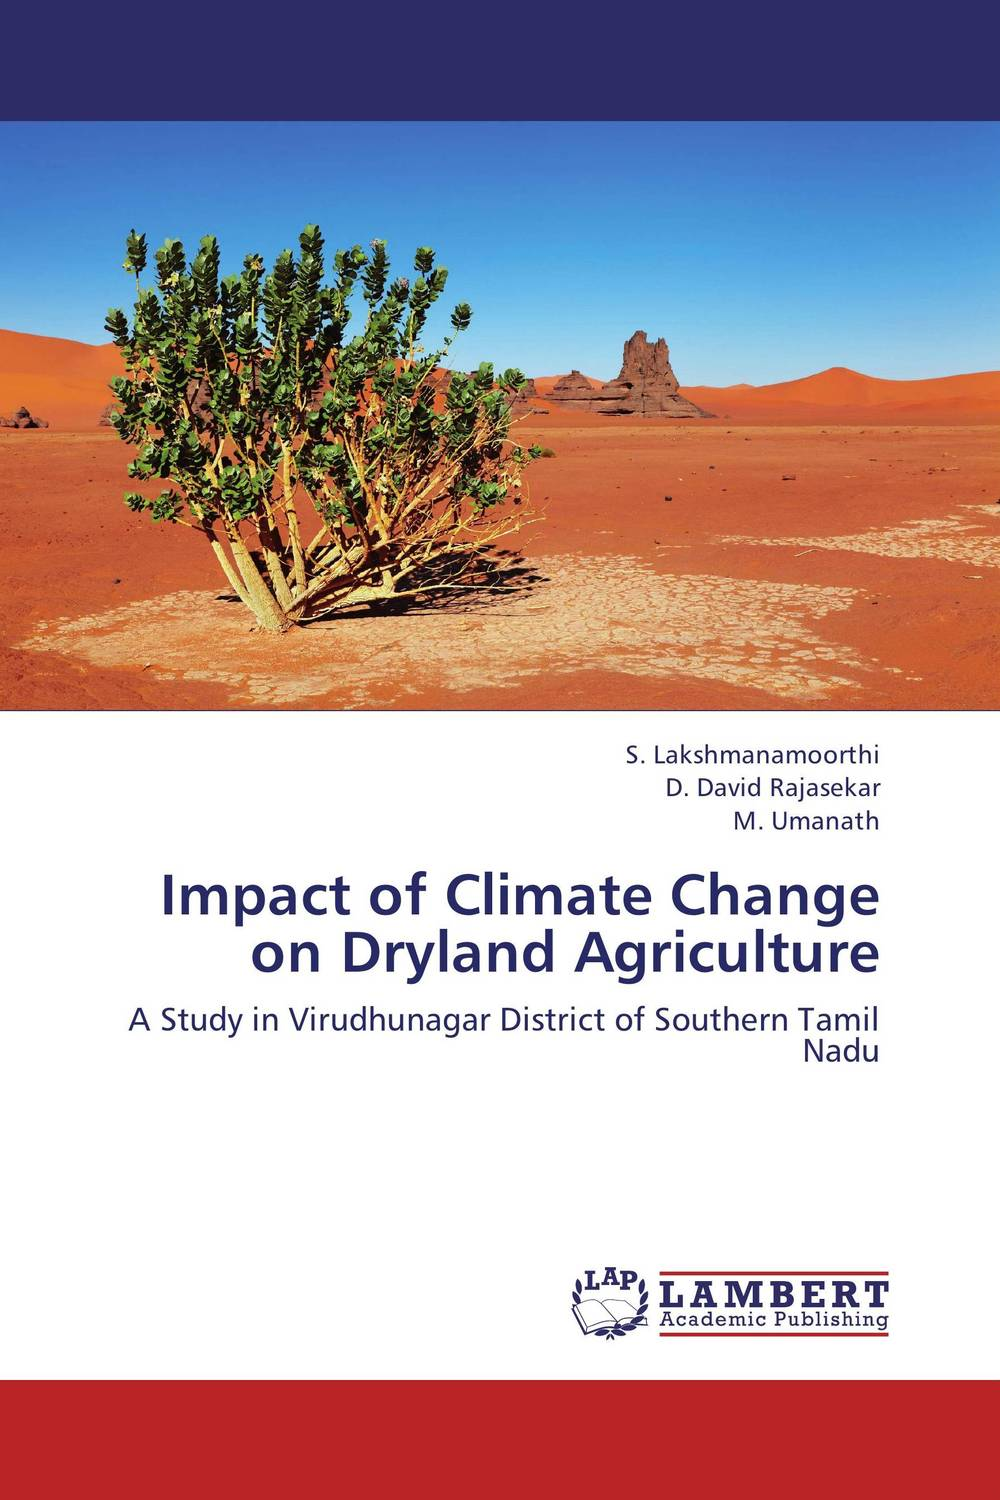 Impact of Climate Change on Dryland Agriculture